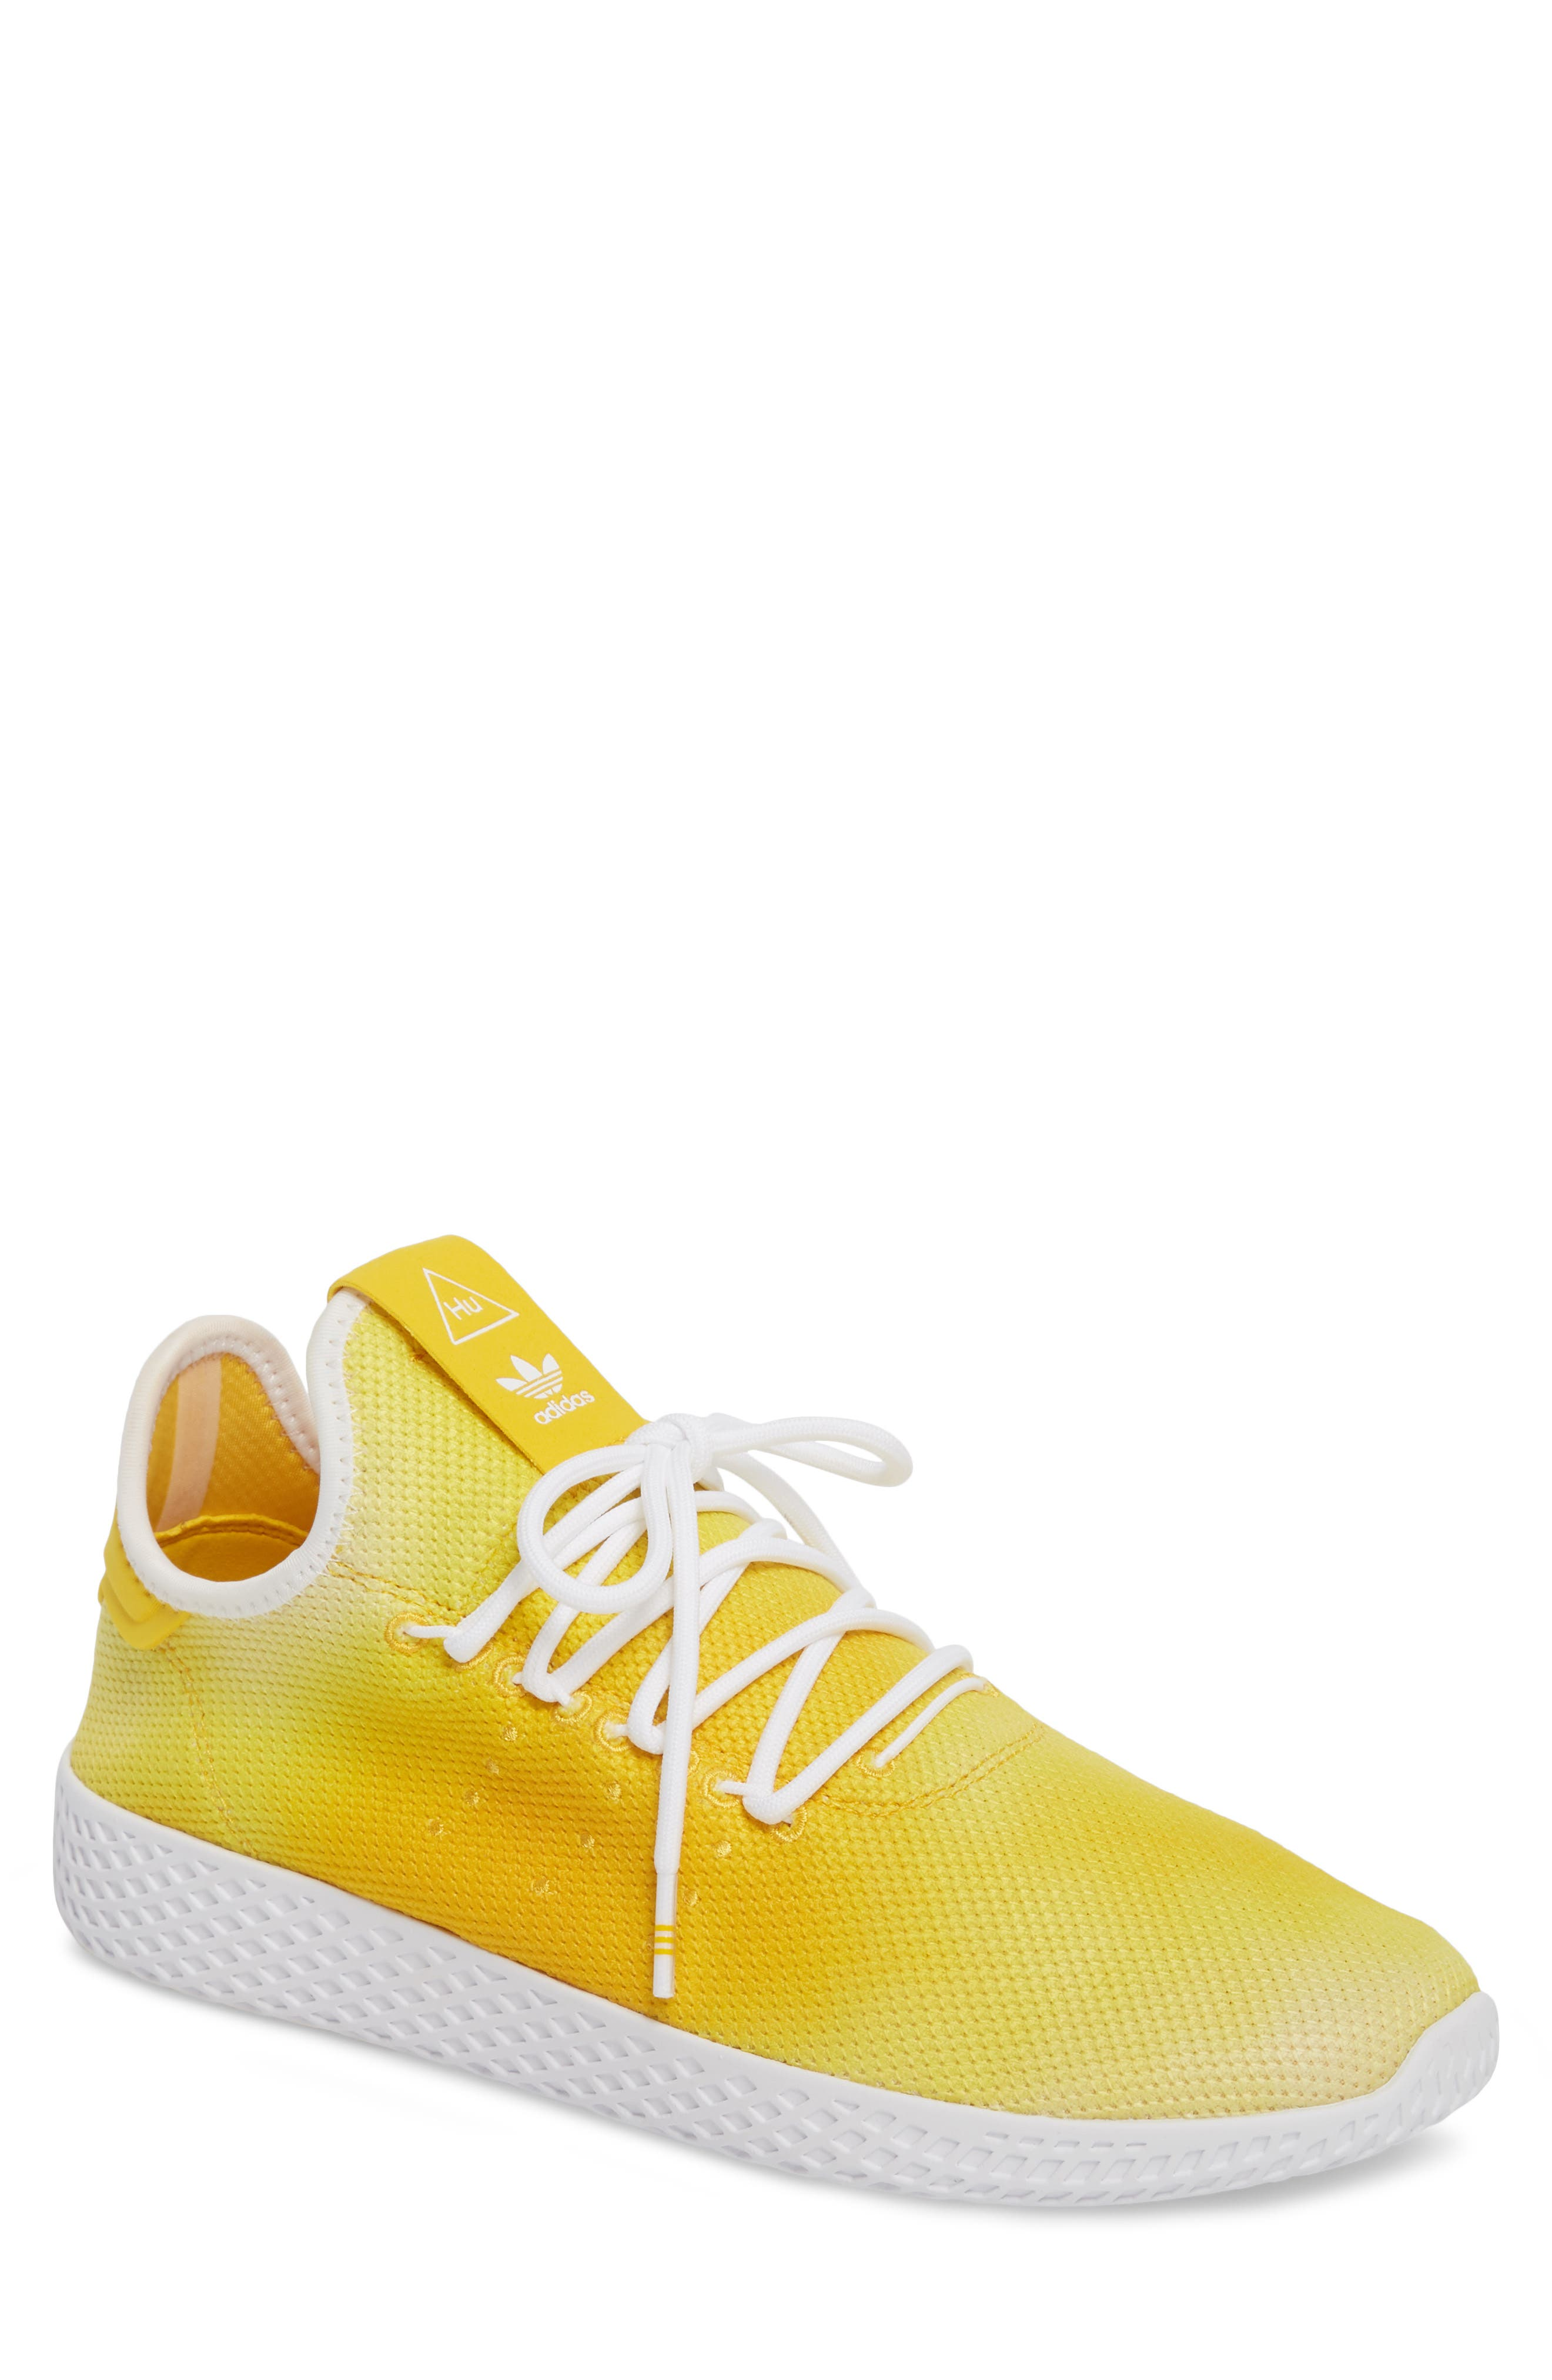 Pharrell Williams Tennis Hu Sneaker,                         Main,                         color, Yellow/ White